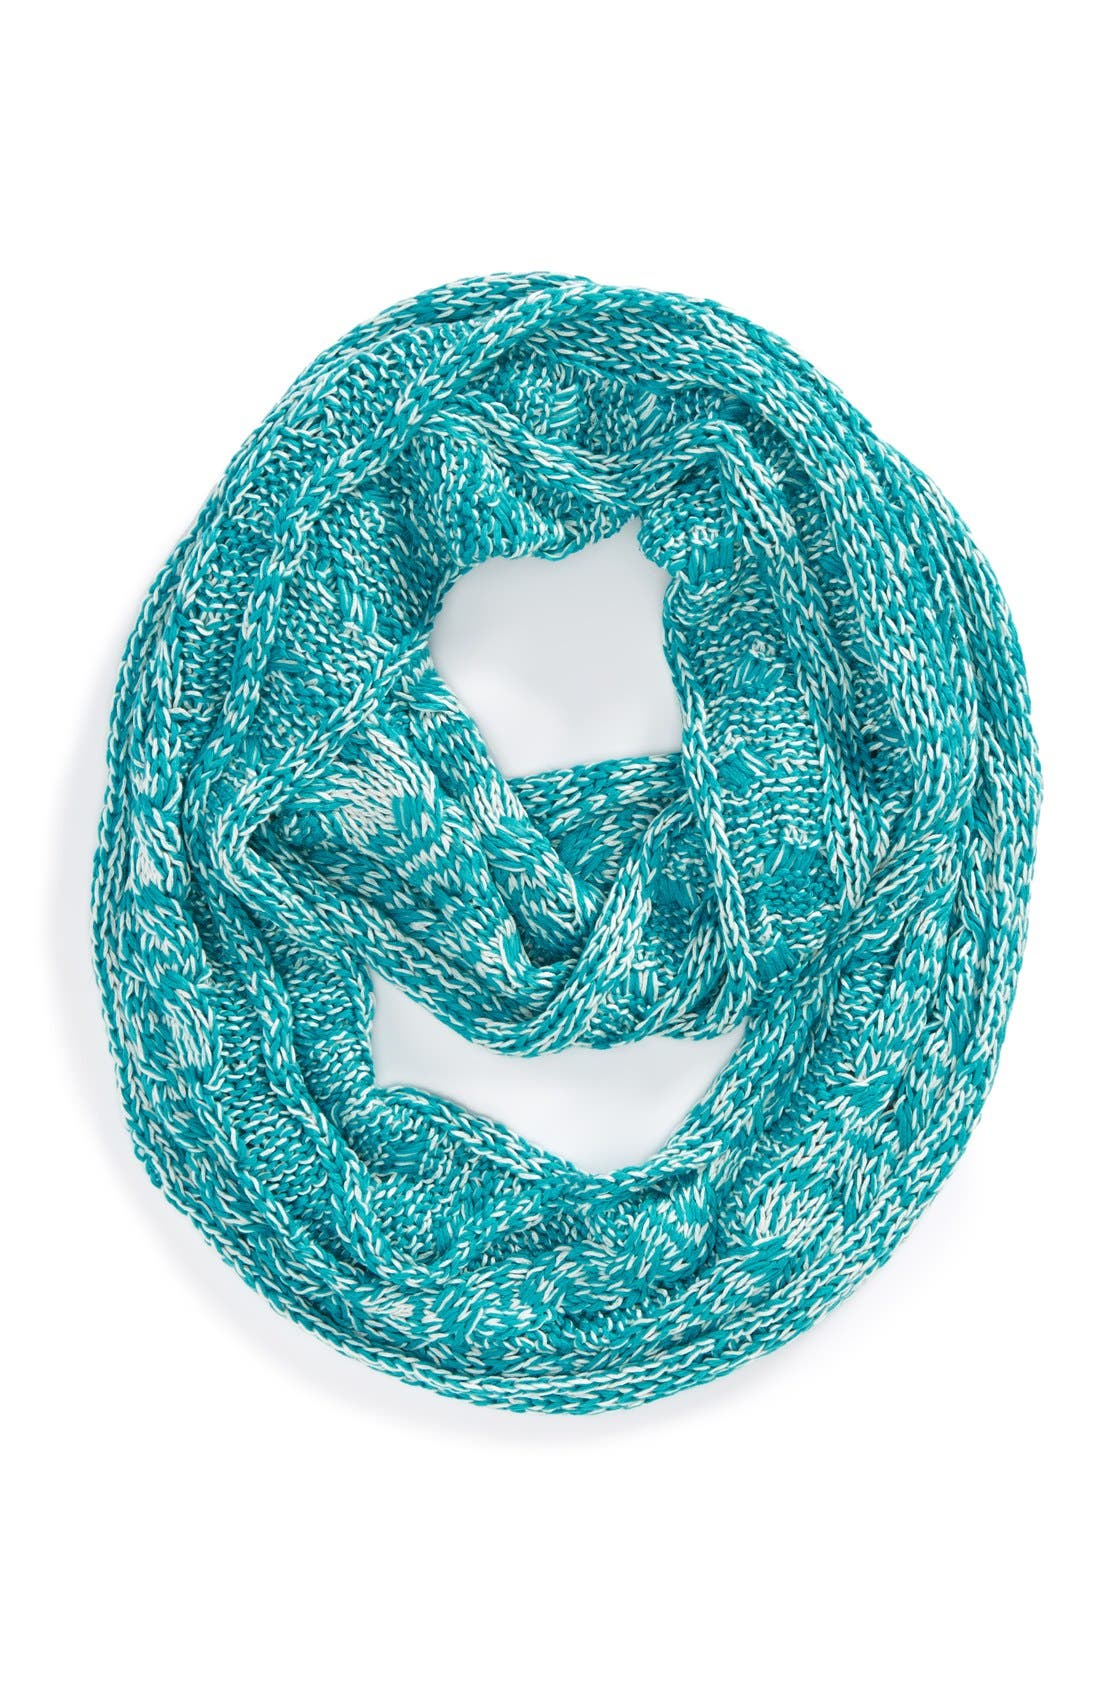 Neon Cable Knit Scarf,                         Main,                         color, 430